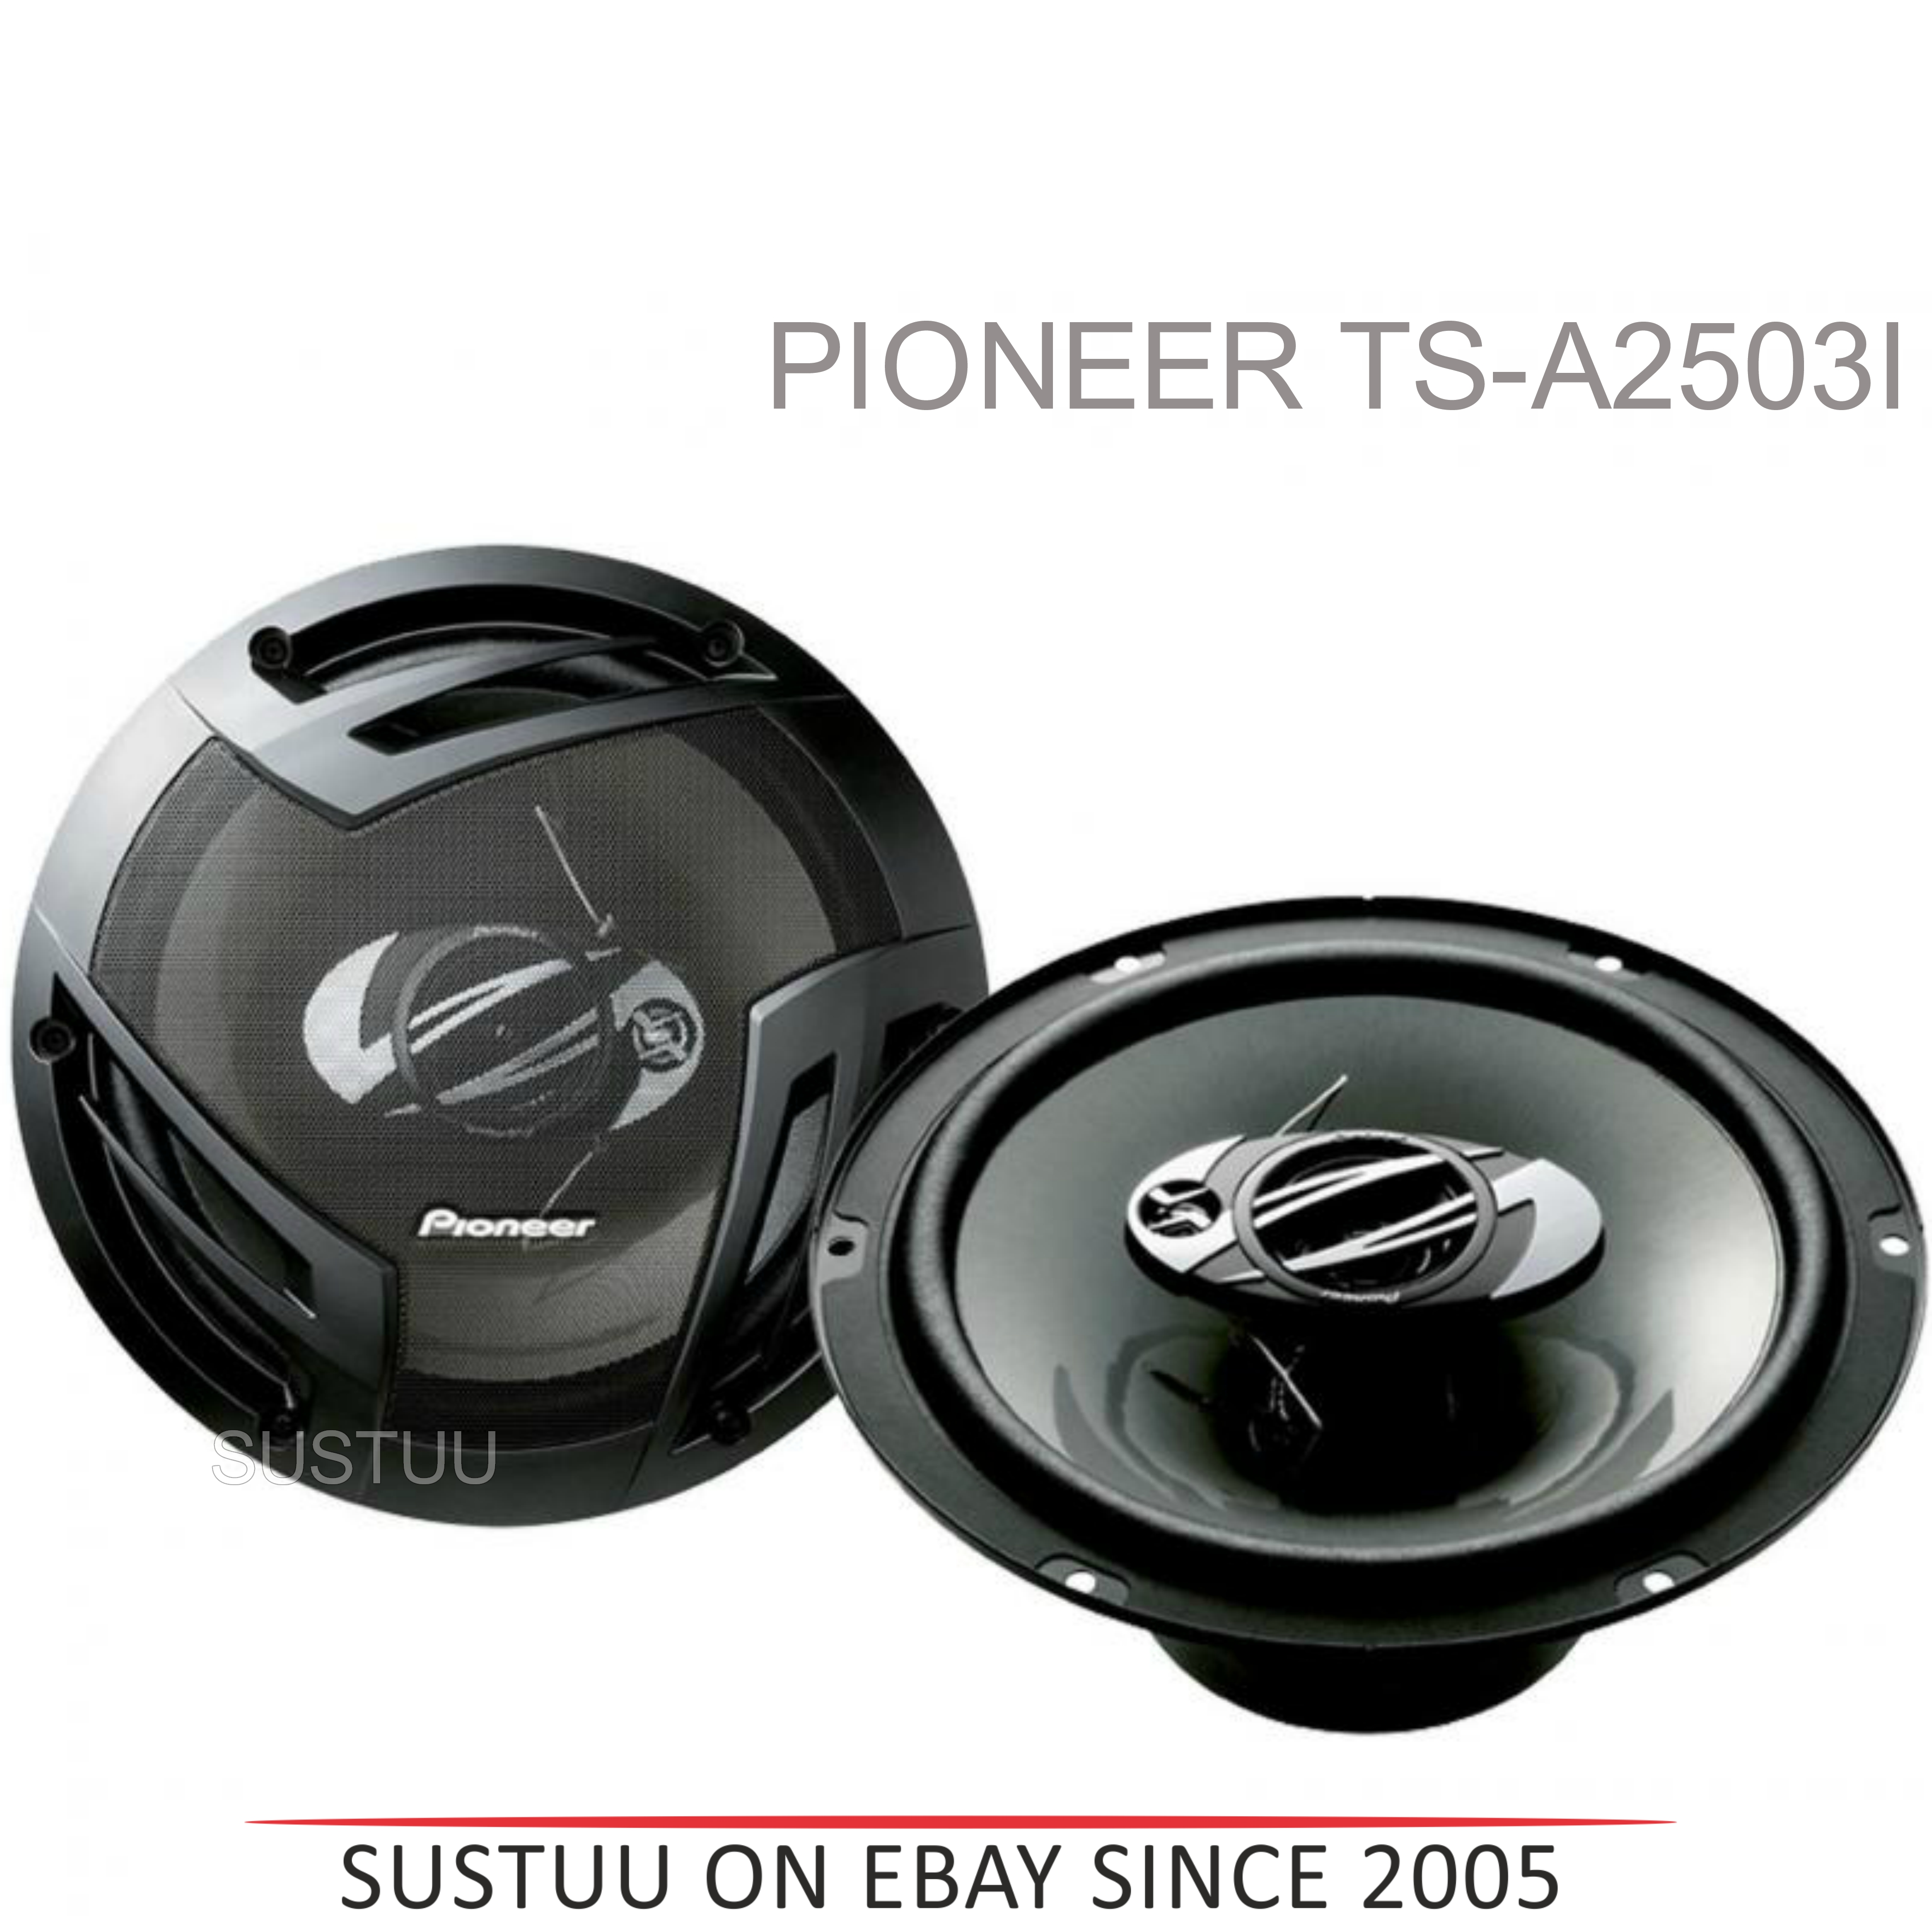 Pioneer TS-A2503i|In Car 3-way Coaxial Speakers|Door-Shelf|Impedance 4?|25cm|420W